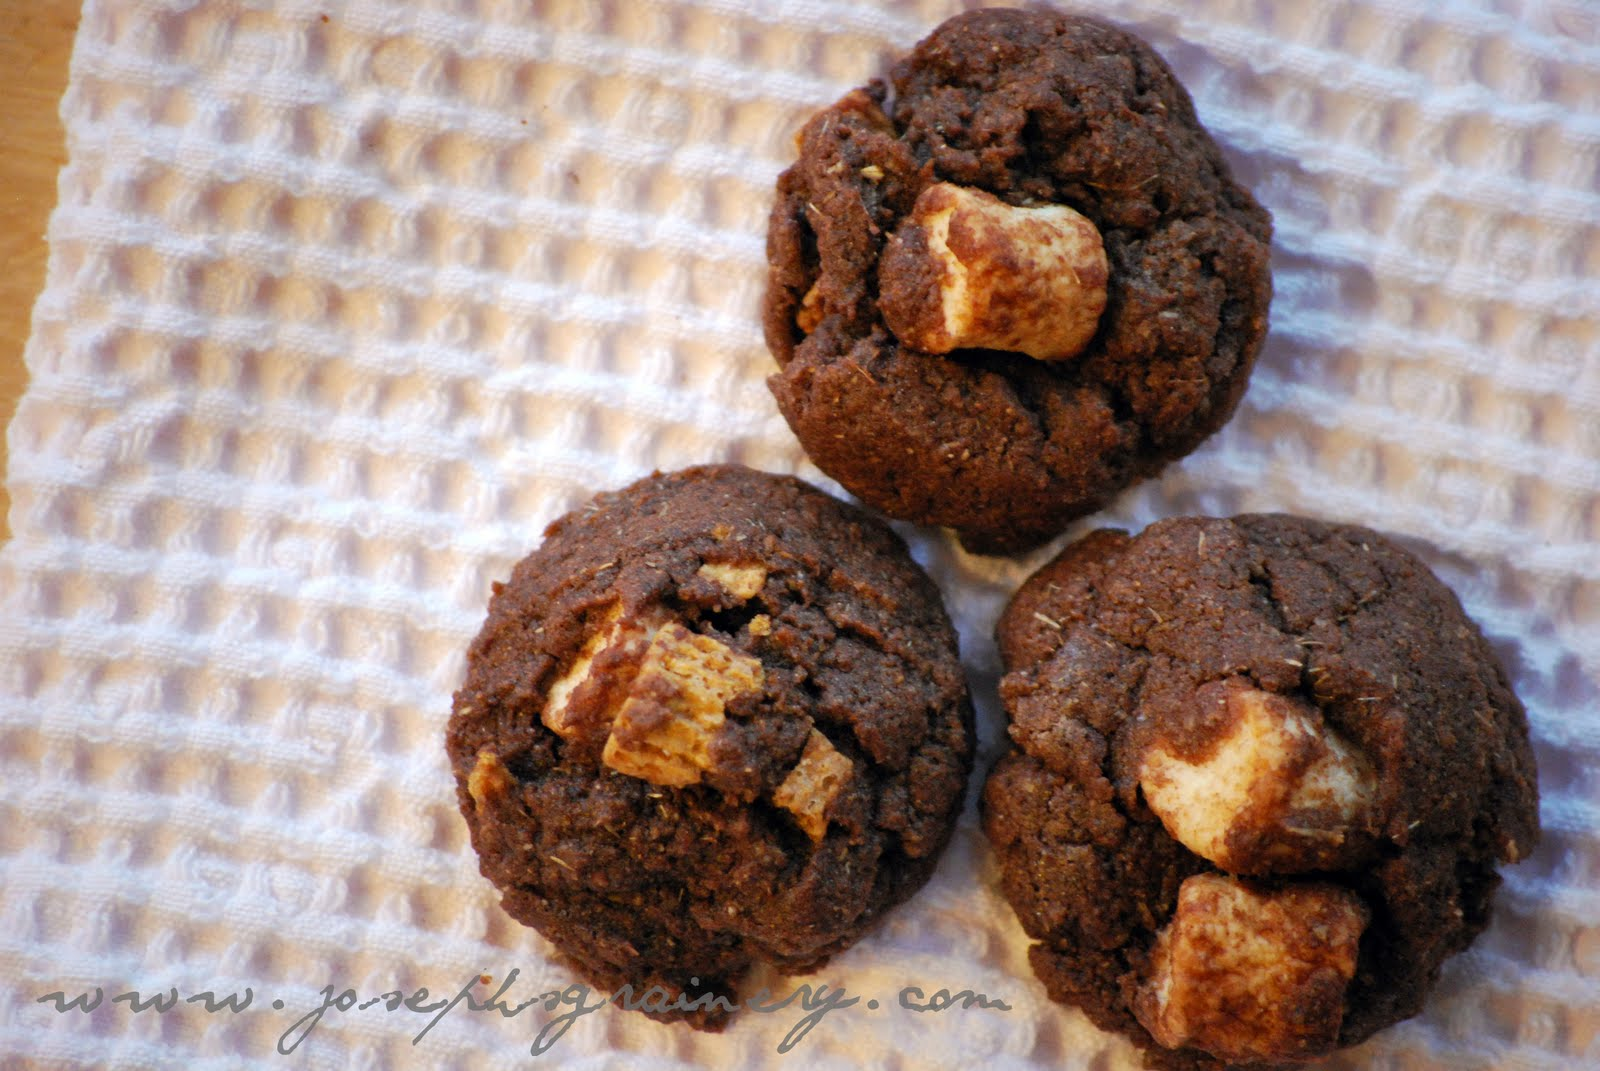 ... Grainery: S'mores Cookies with Joseph's Grainery Whole Grain Cookie